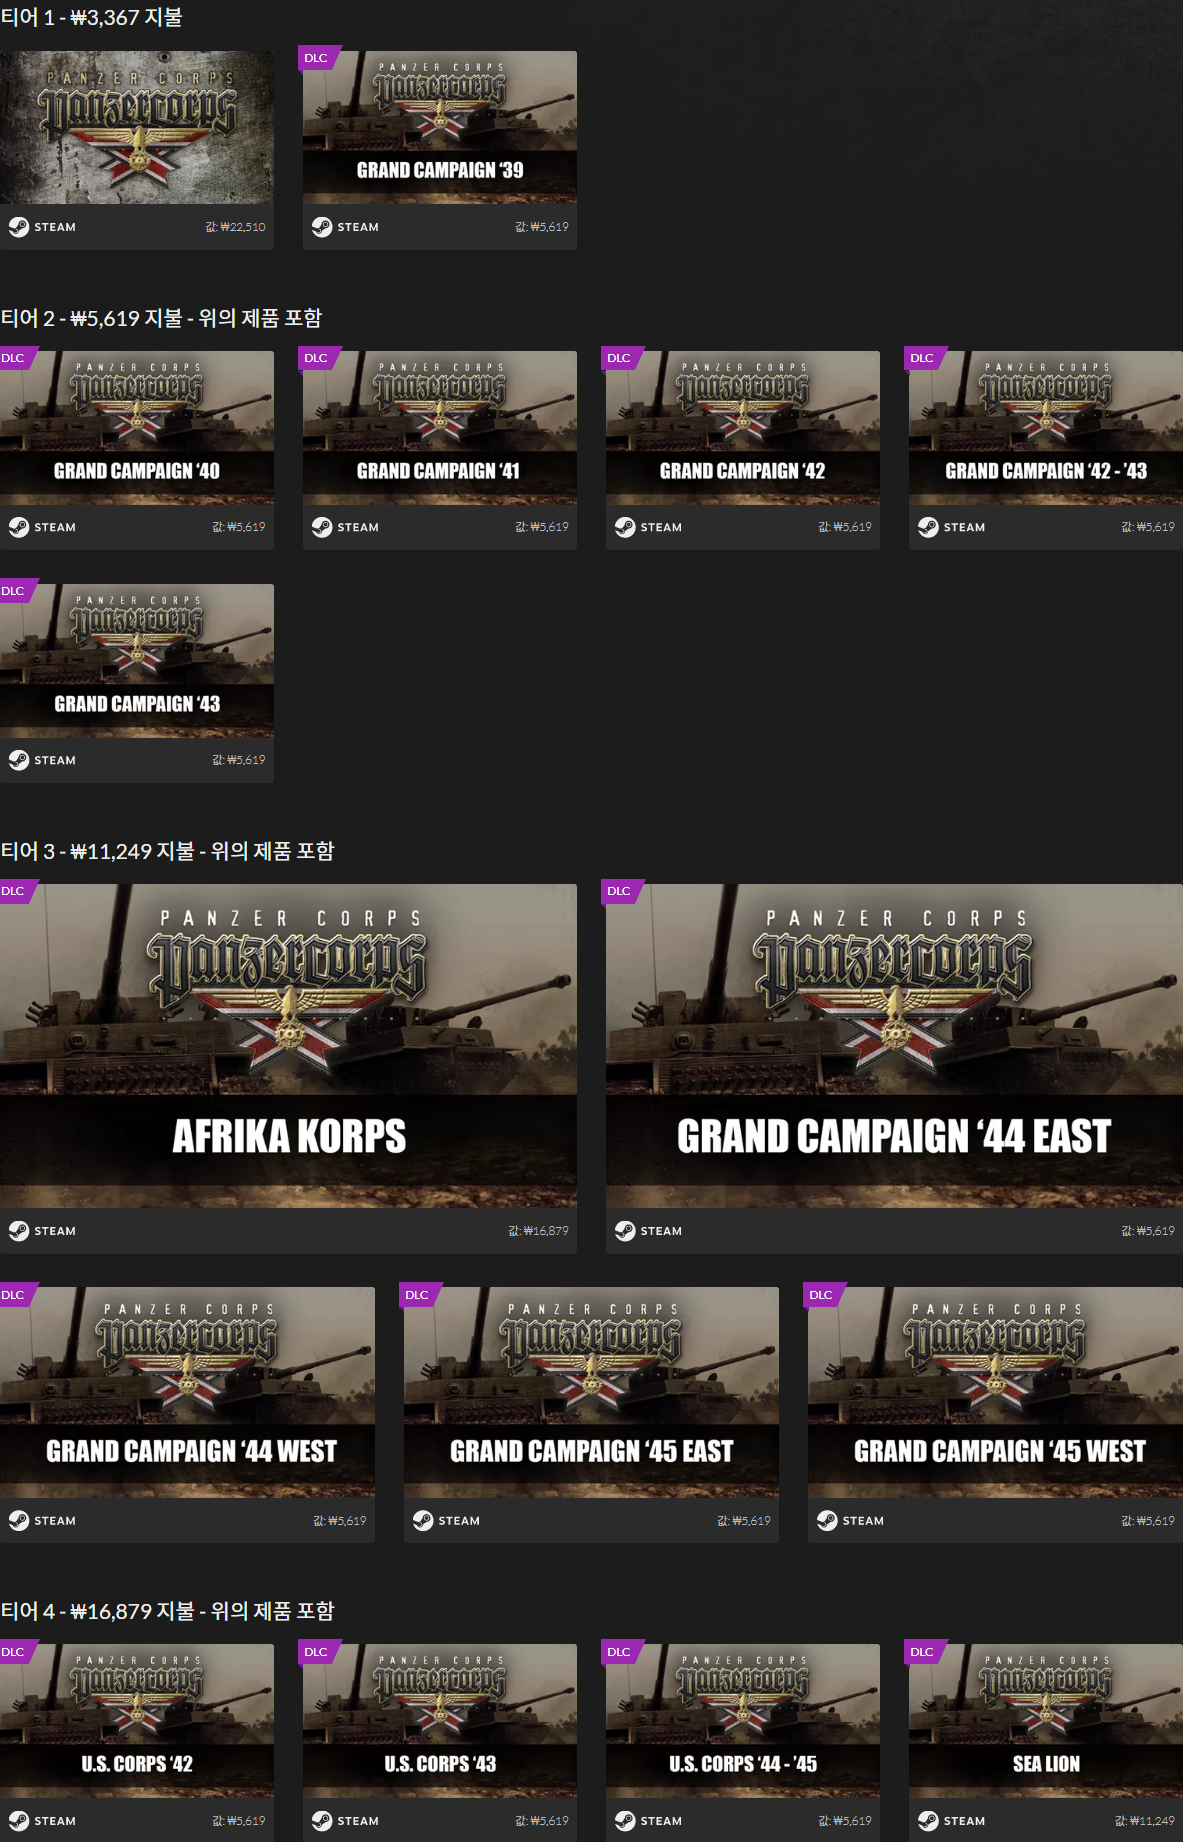 Screenshot_2019-02-22 Panzer Corps Bundle 스팀 게임 번들 Fanatical(1).png